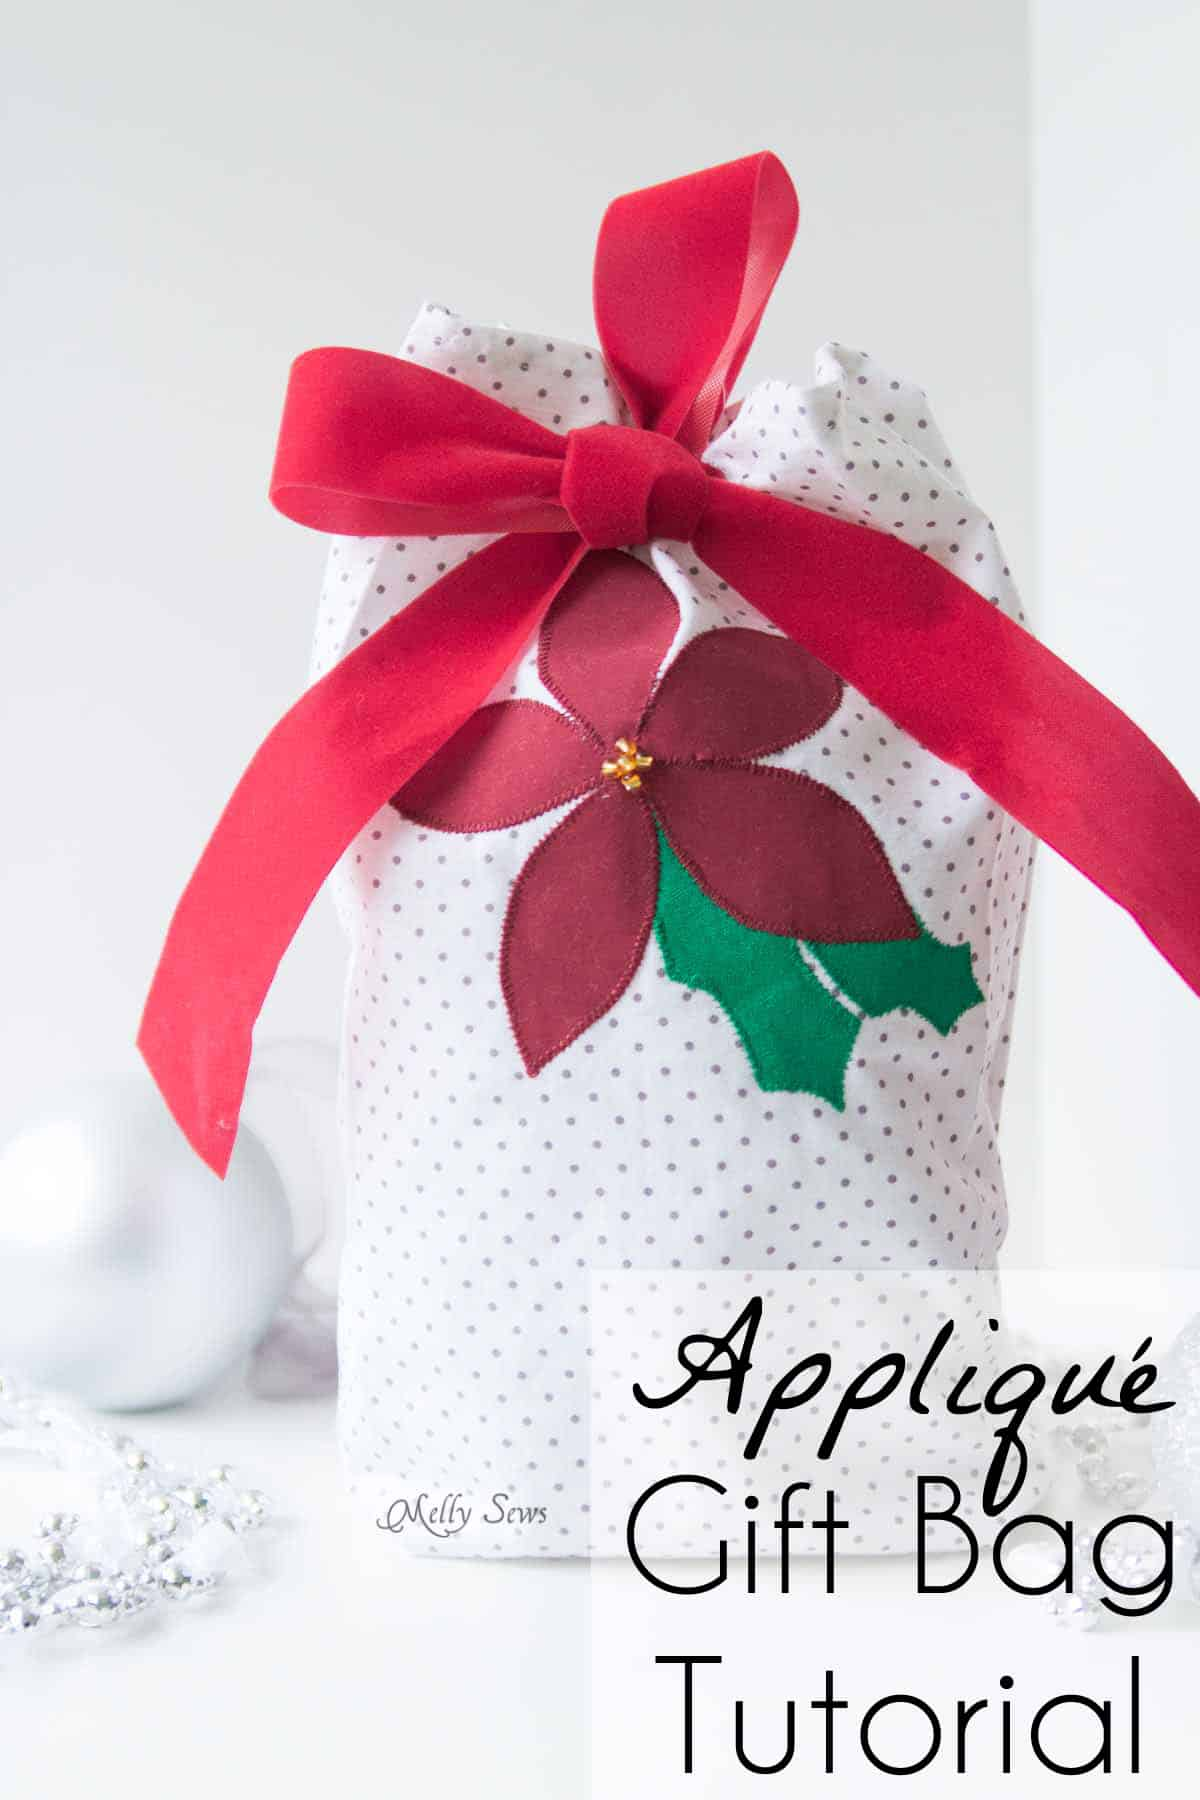 appliquéd gift bag tutorial - sew reusable gift bags and use up your scraps! Sewing tutorial by Melly Sews